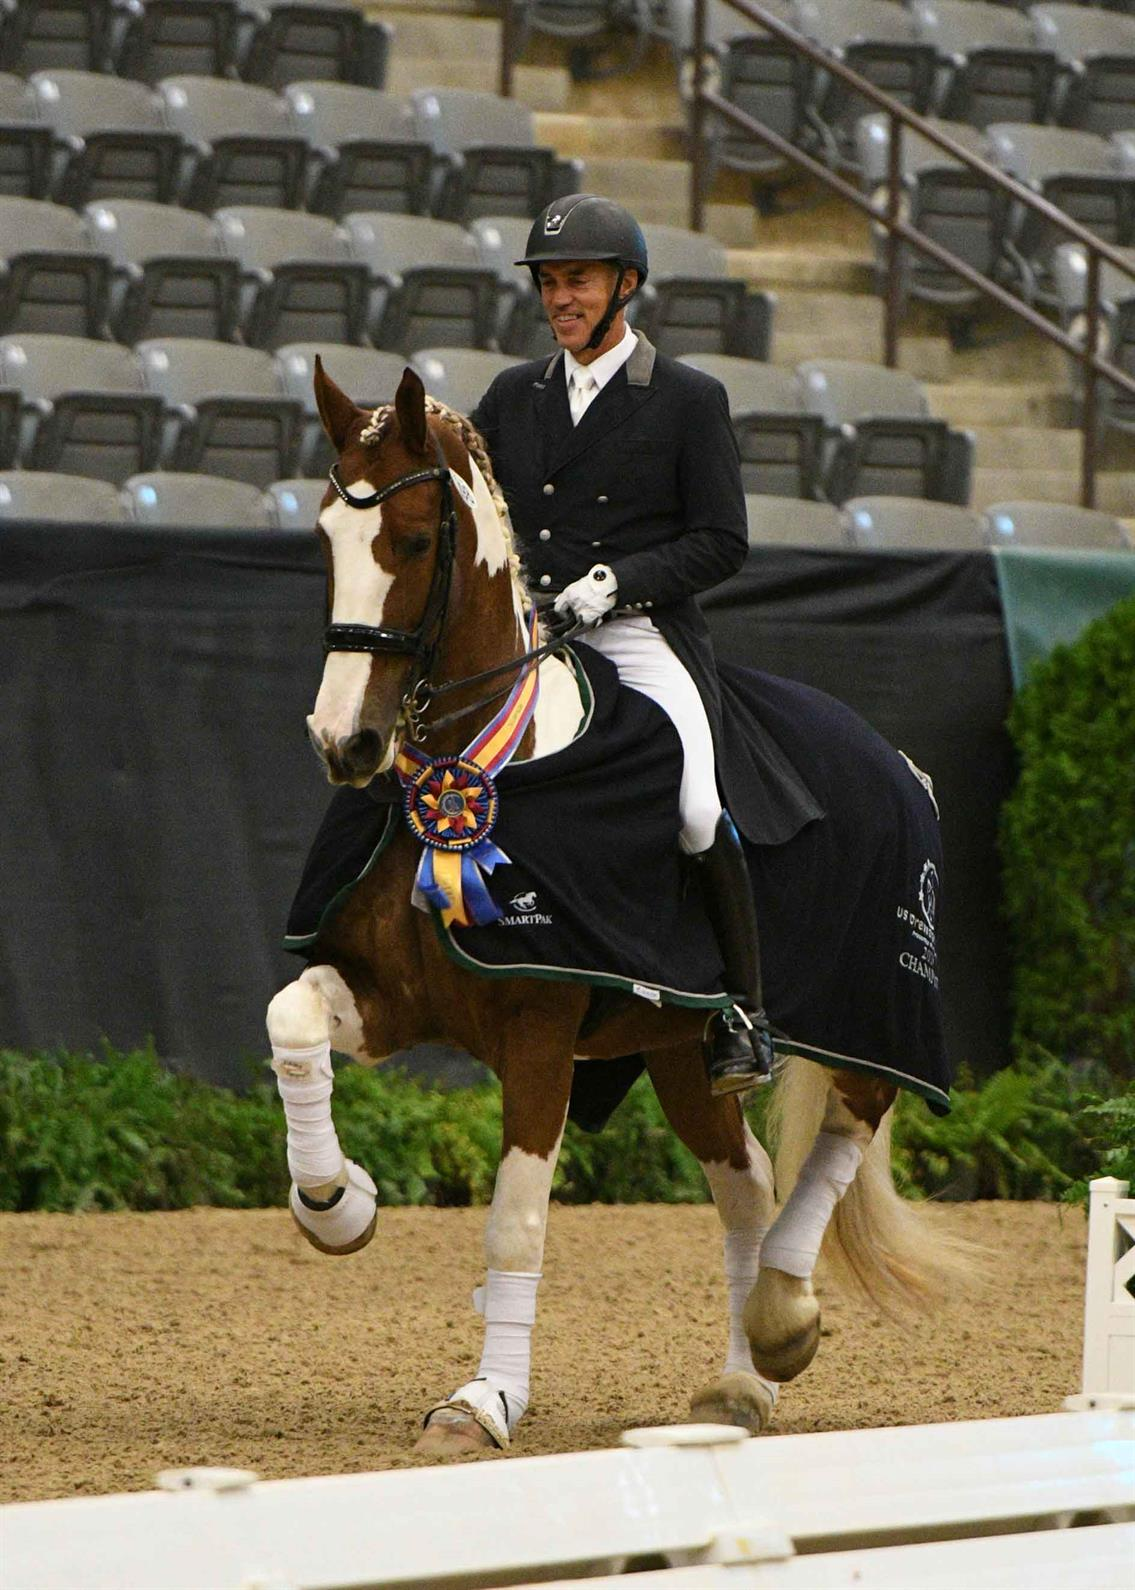 Champions Emerge At 2018 US Dressage Finals Presented By